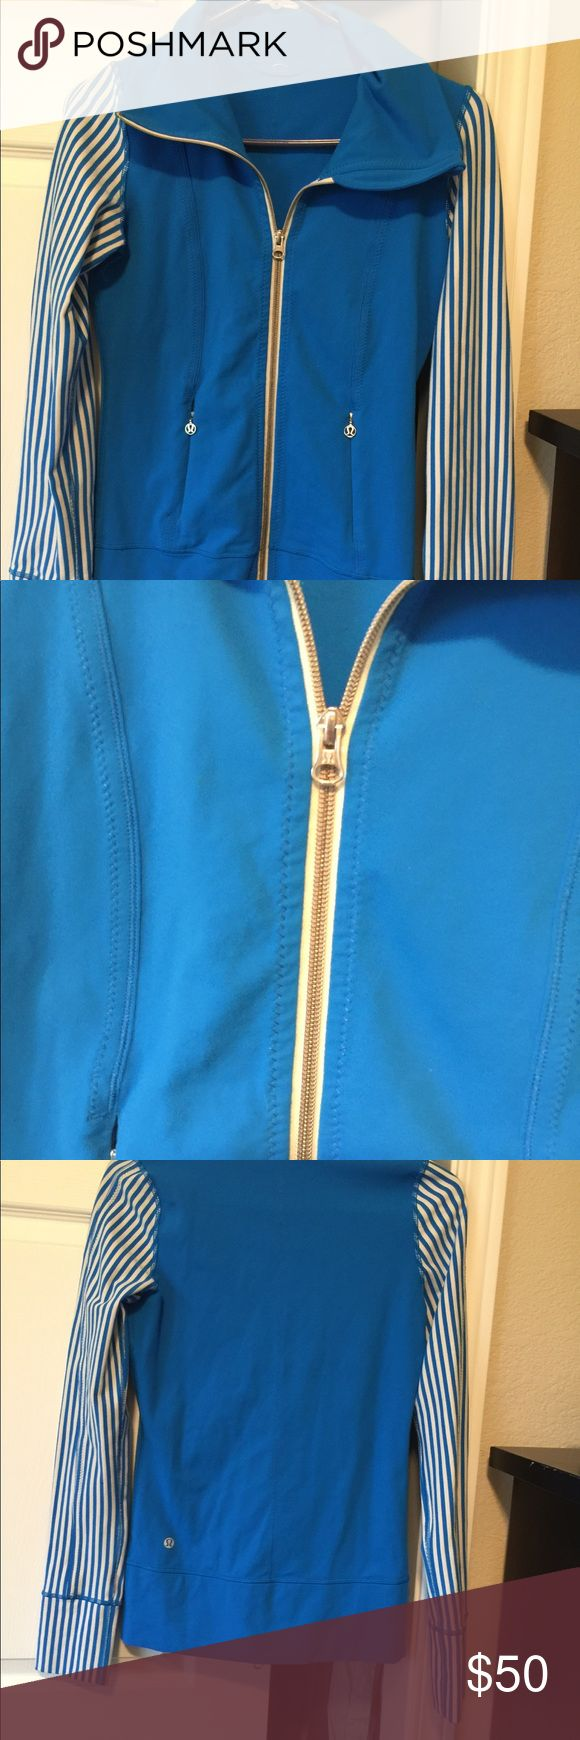 Lululemon Jacket Top Zip Front 2 Lovely authentic Lululemon blue zip up Excellent clean condition  Like new Size 2 lululemon athletica Jackets & Coats